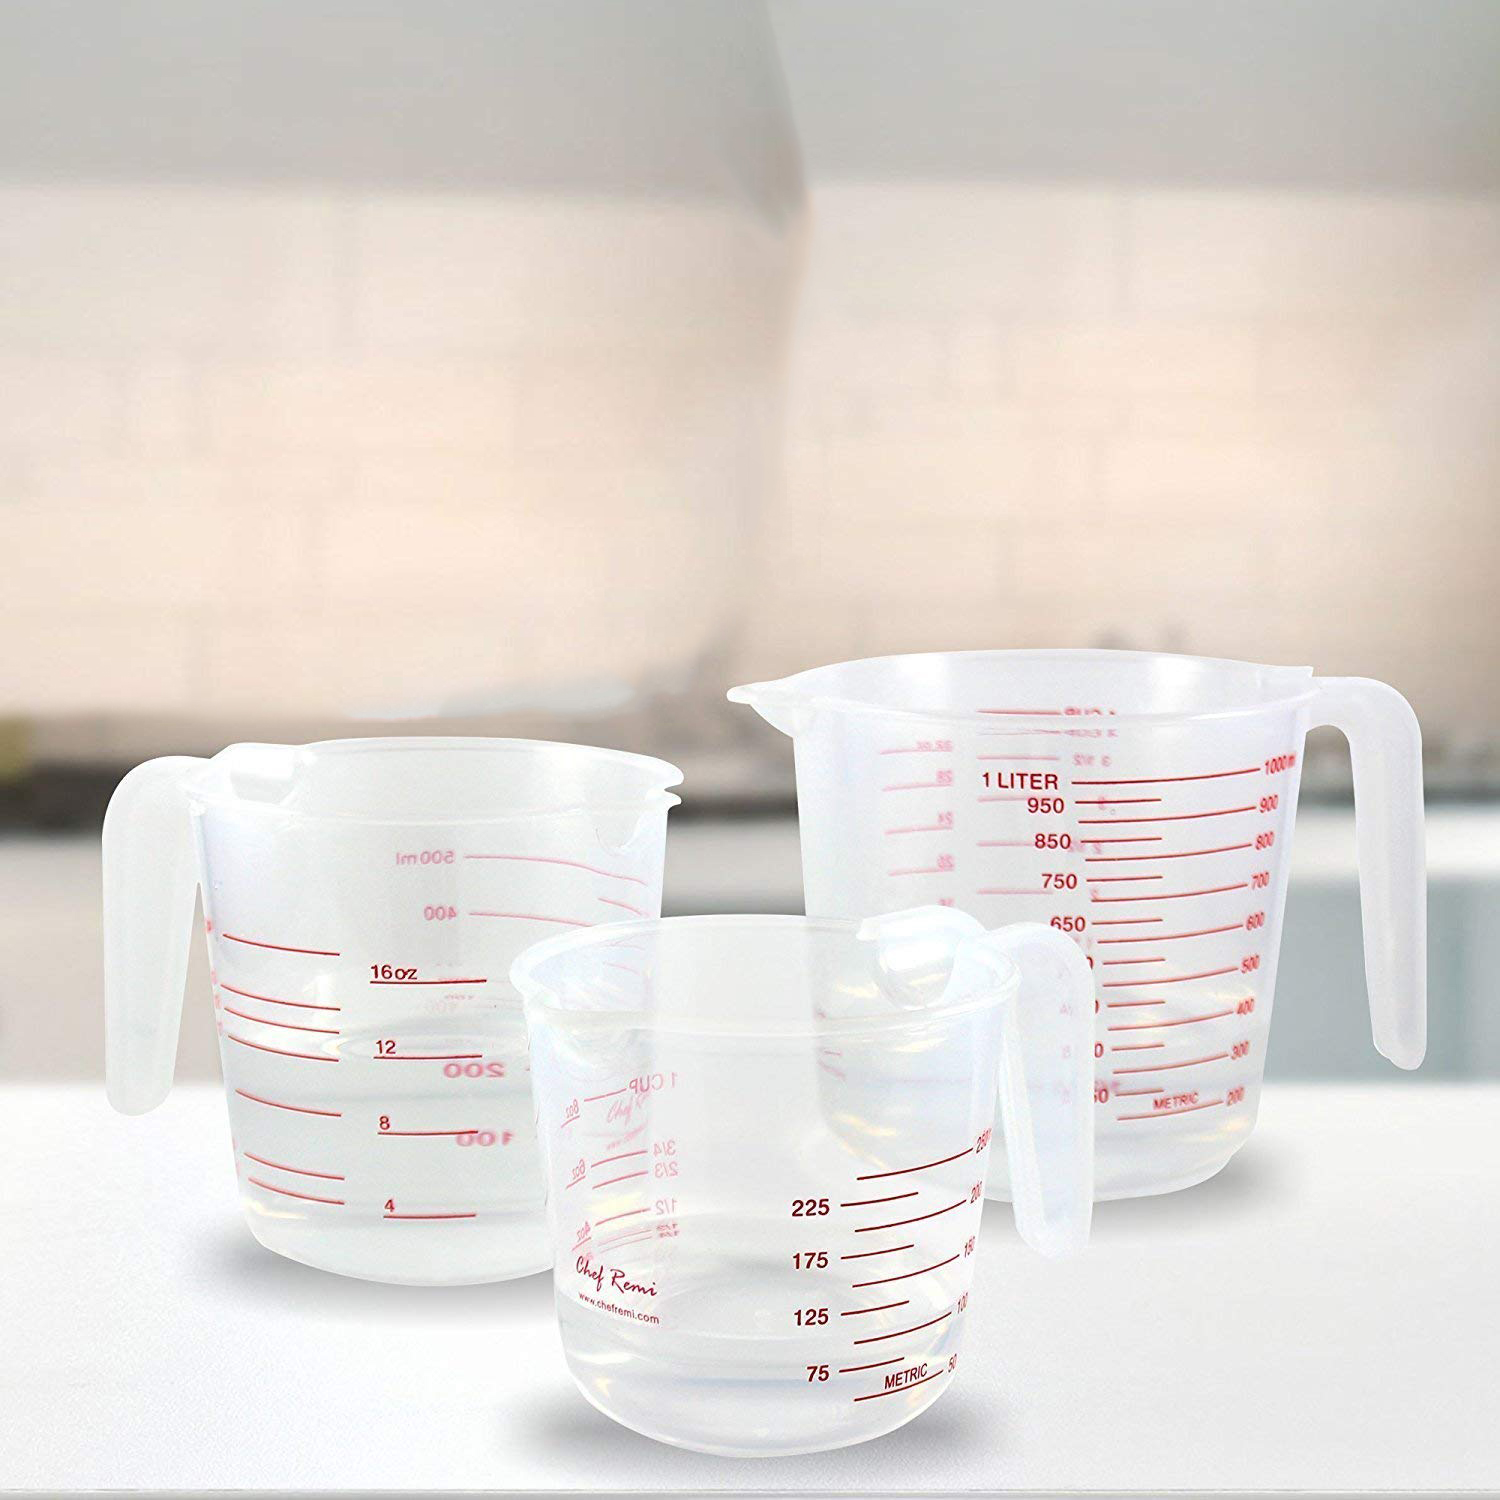 2 Cup and 1 Cup Capacity BPA Fre 3pc Plastic Measuring Jug Set Large 4 Cup